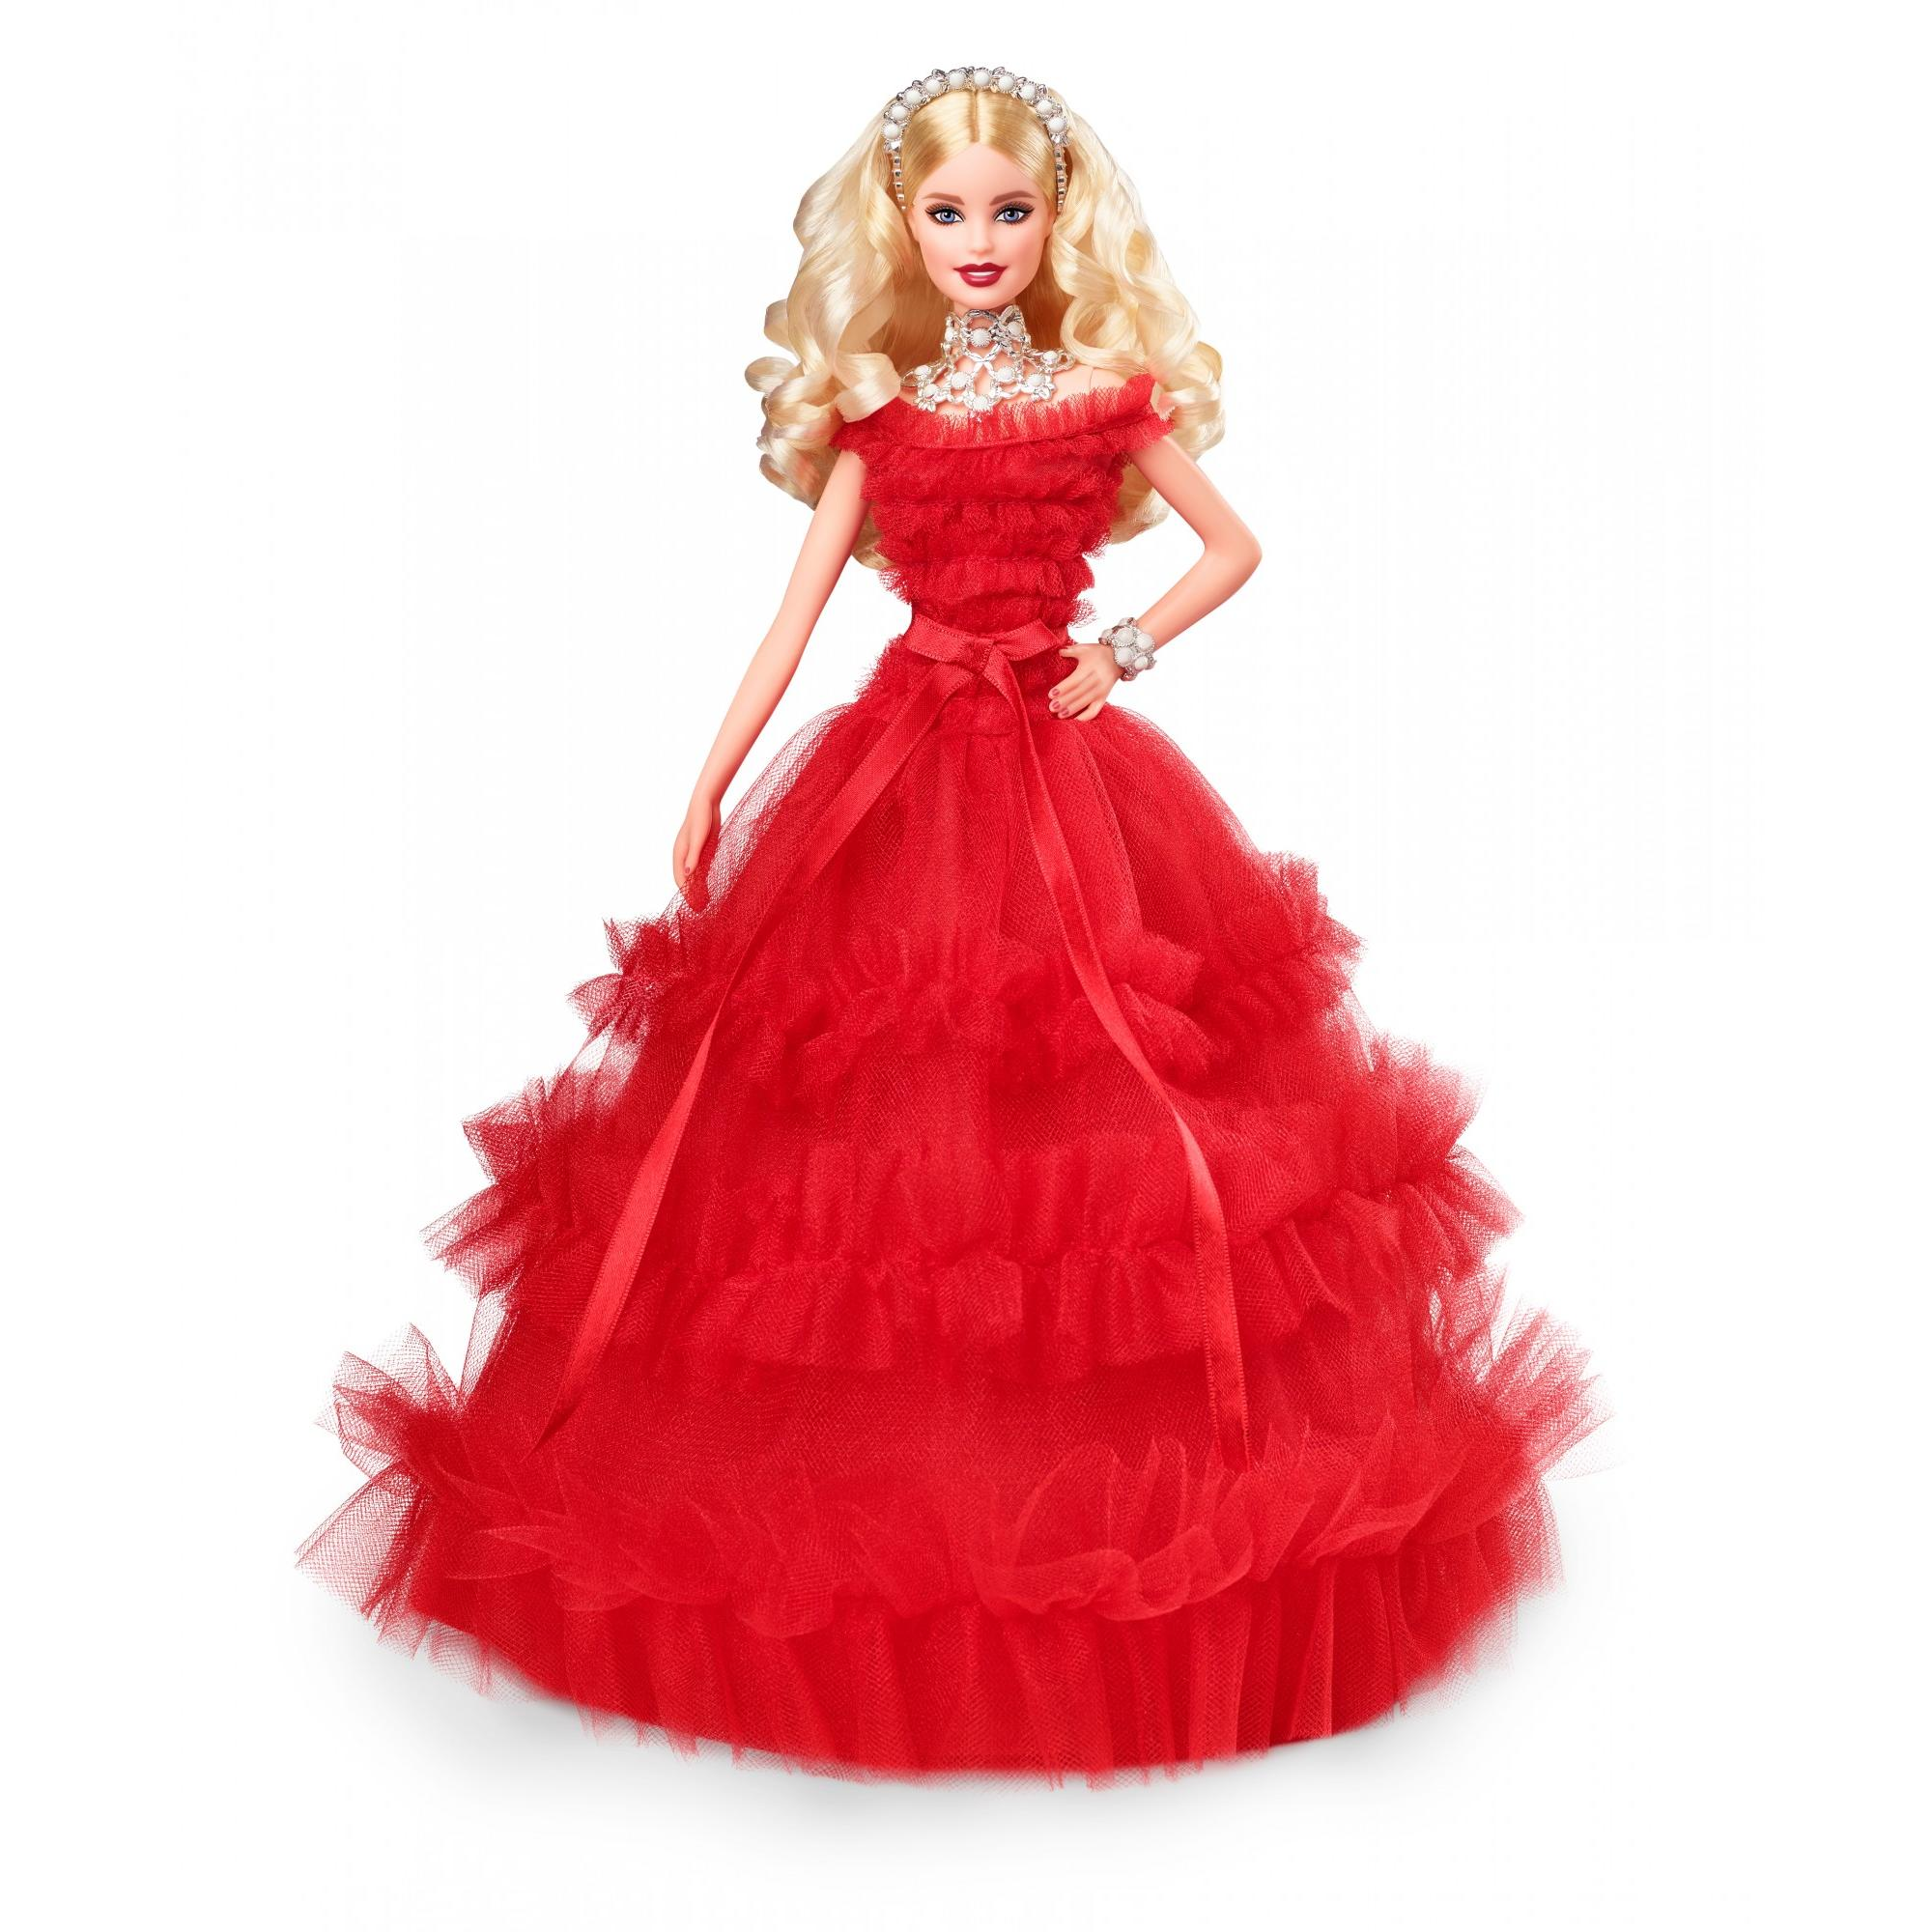 2018 Holiday Barbie Doll by Mattel